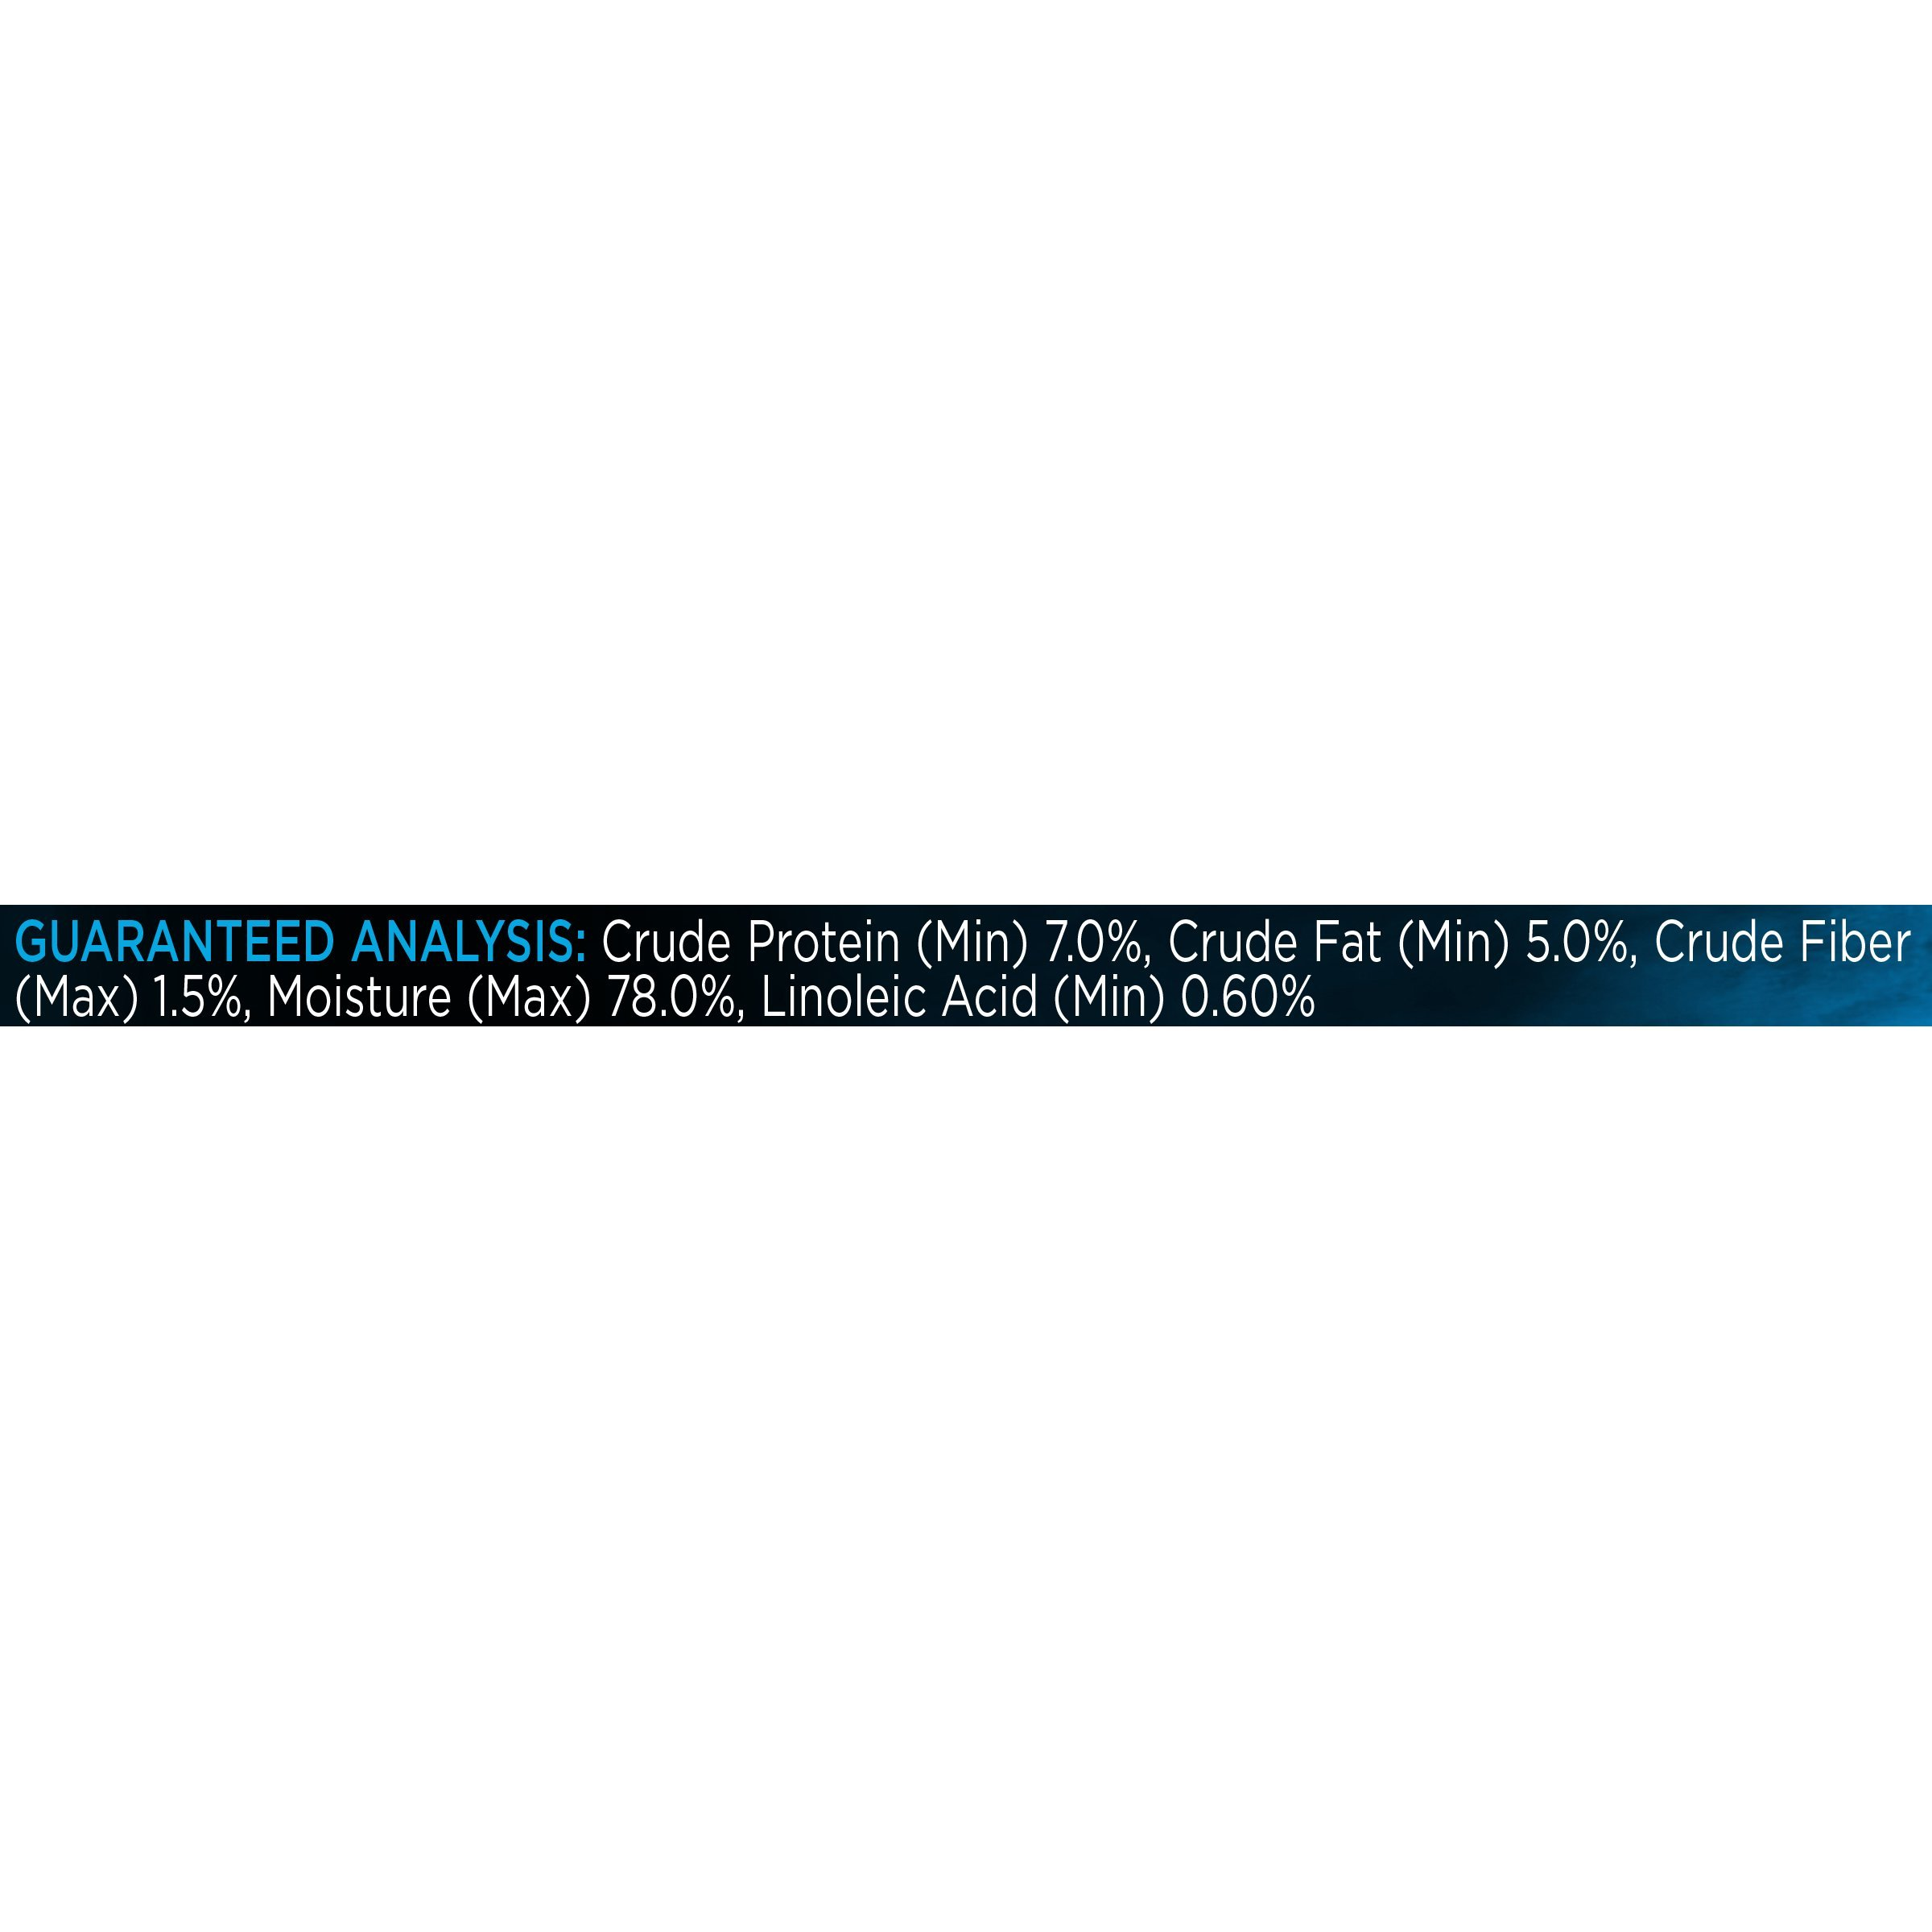 Purina Pro Plan (3810002766) Focus Sensitive Skin & Stomach Salmon & Rice Entre Classic Wet Dog Food - 12-13 oz. Cans by Purina Pro Plan (Image #7)